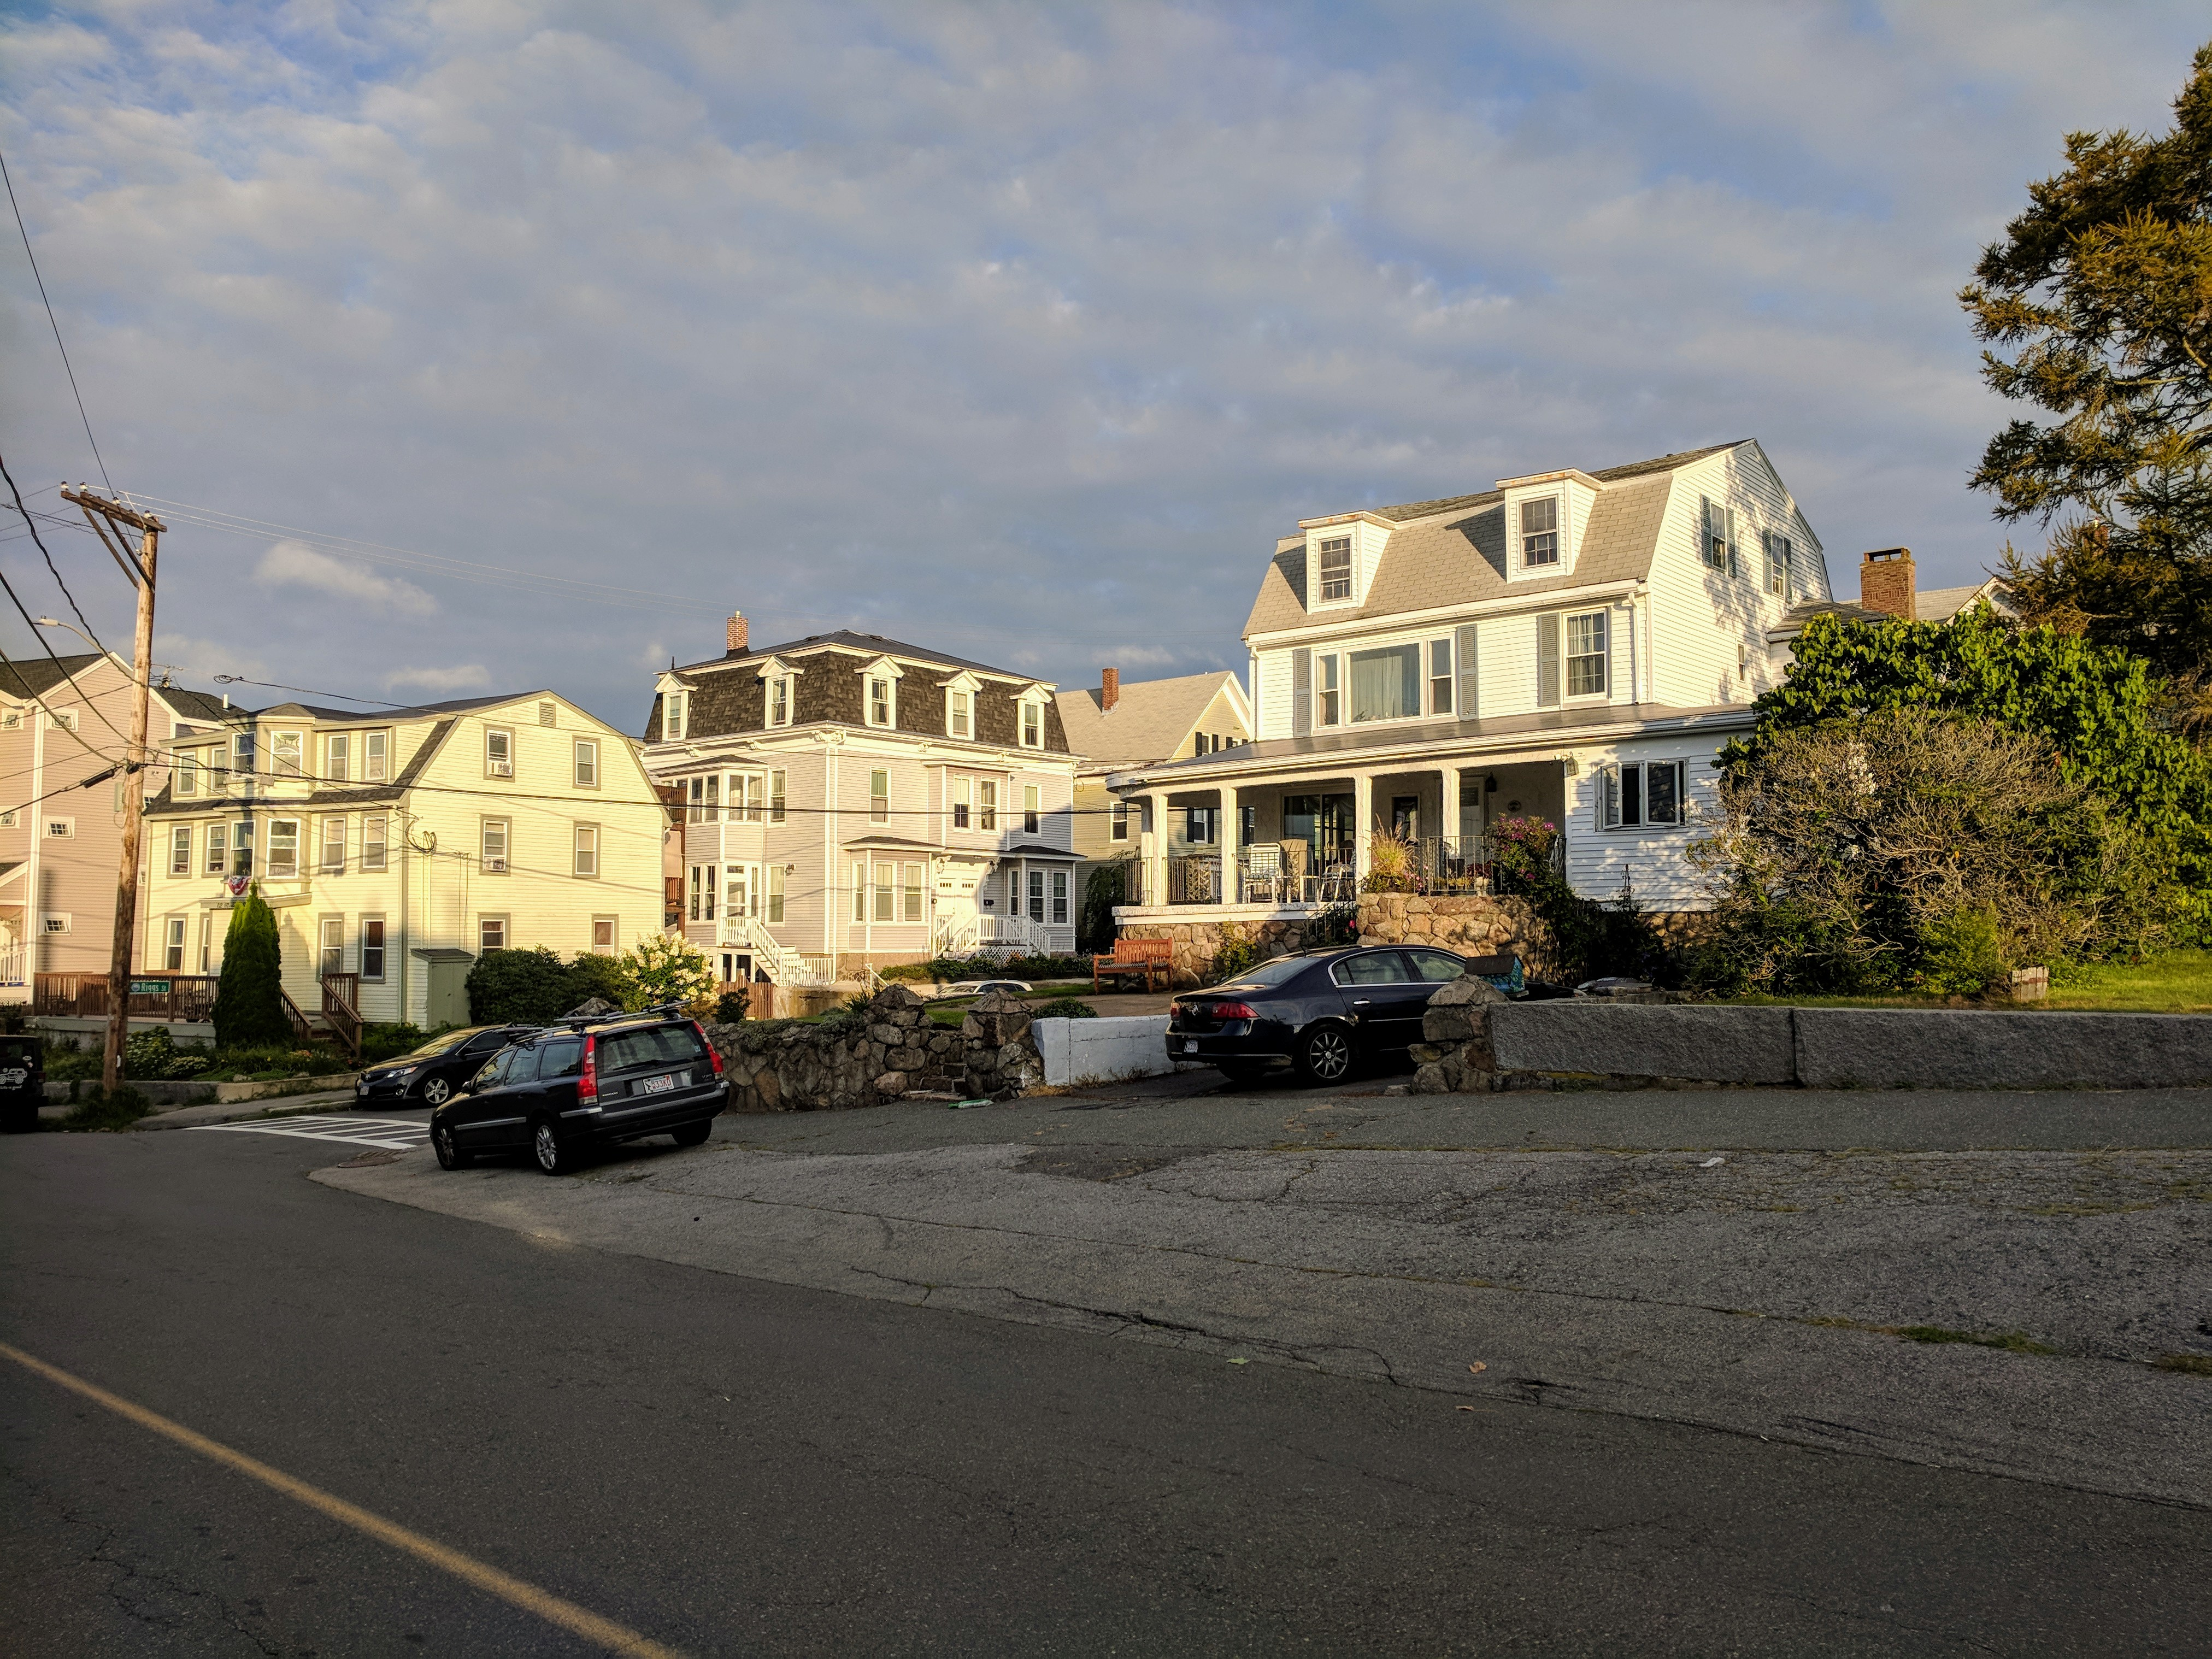 Riggs Street at Middle Street Gloucester Mass _20180820_©c ryan